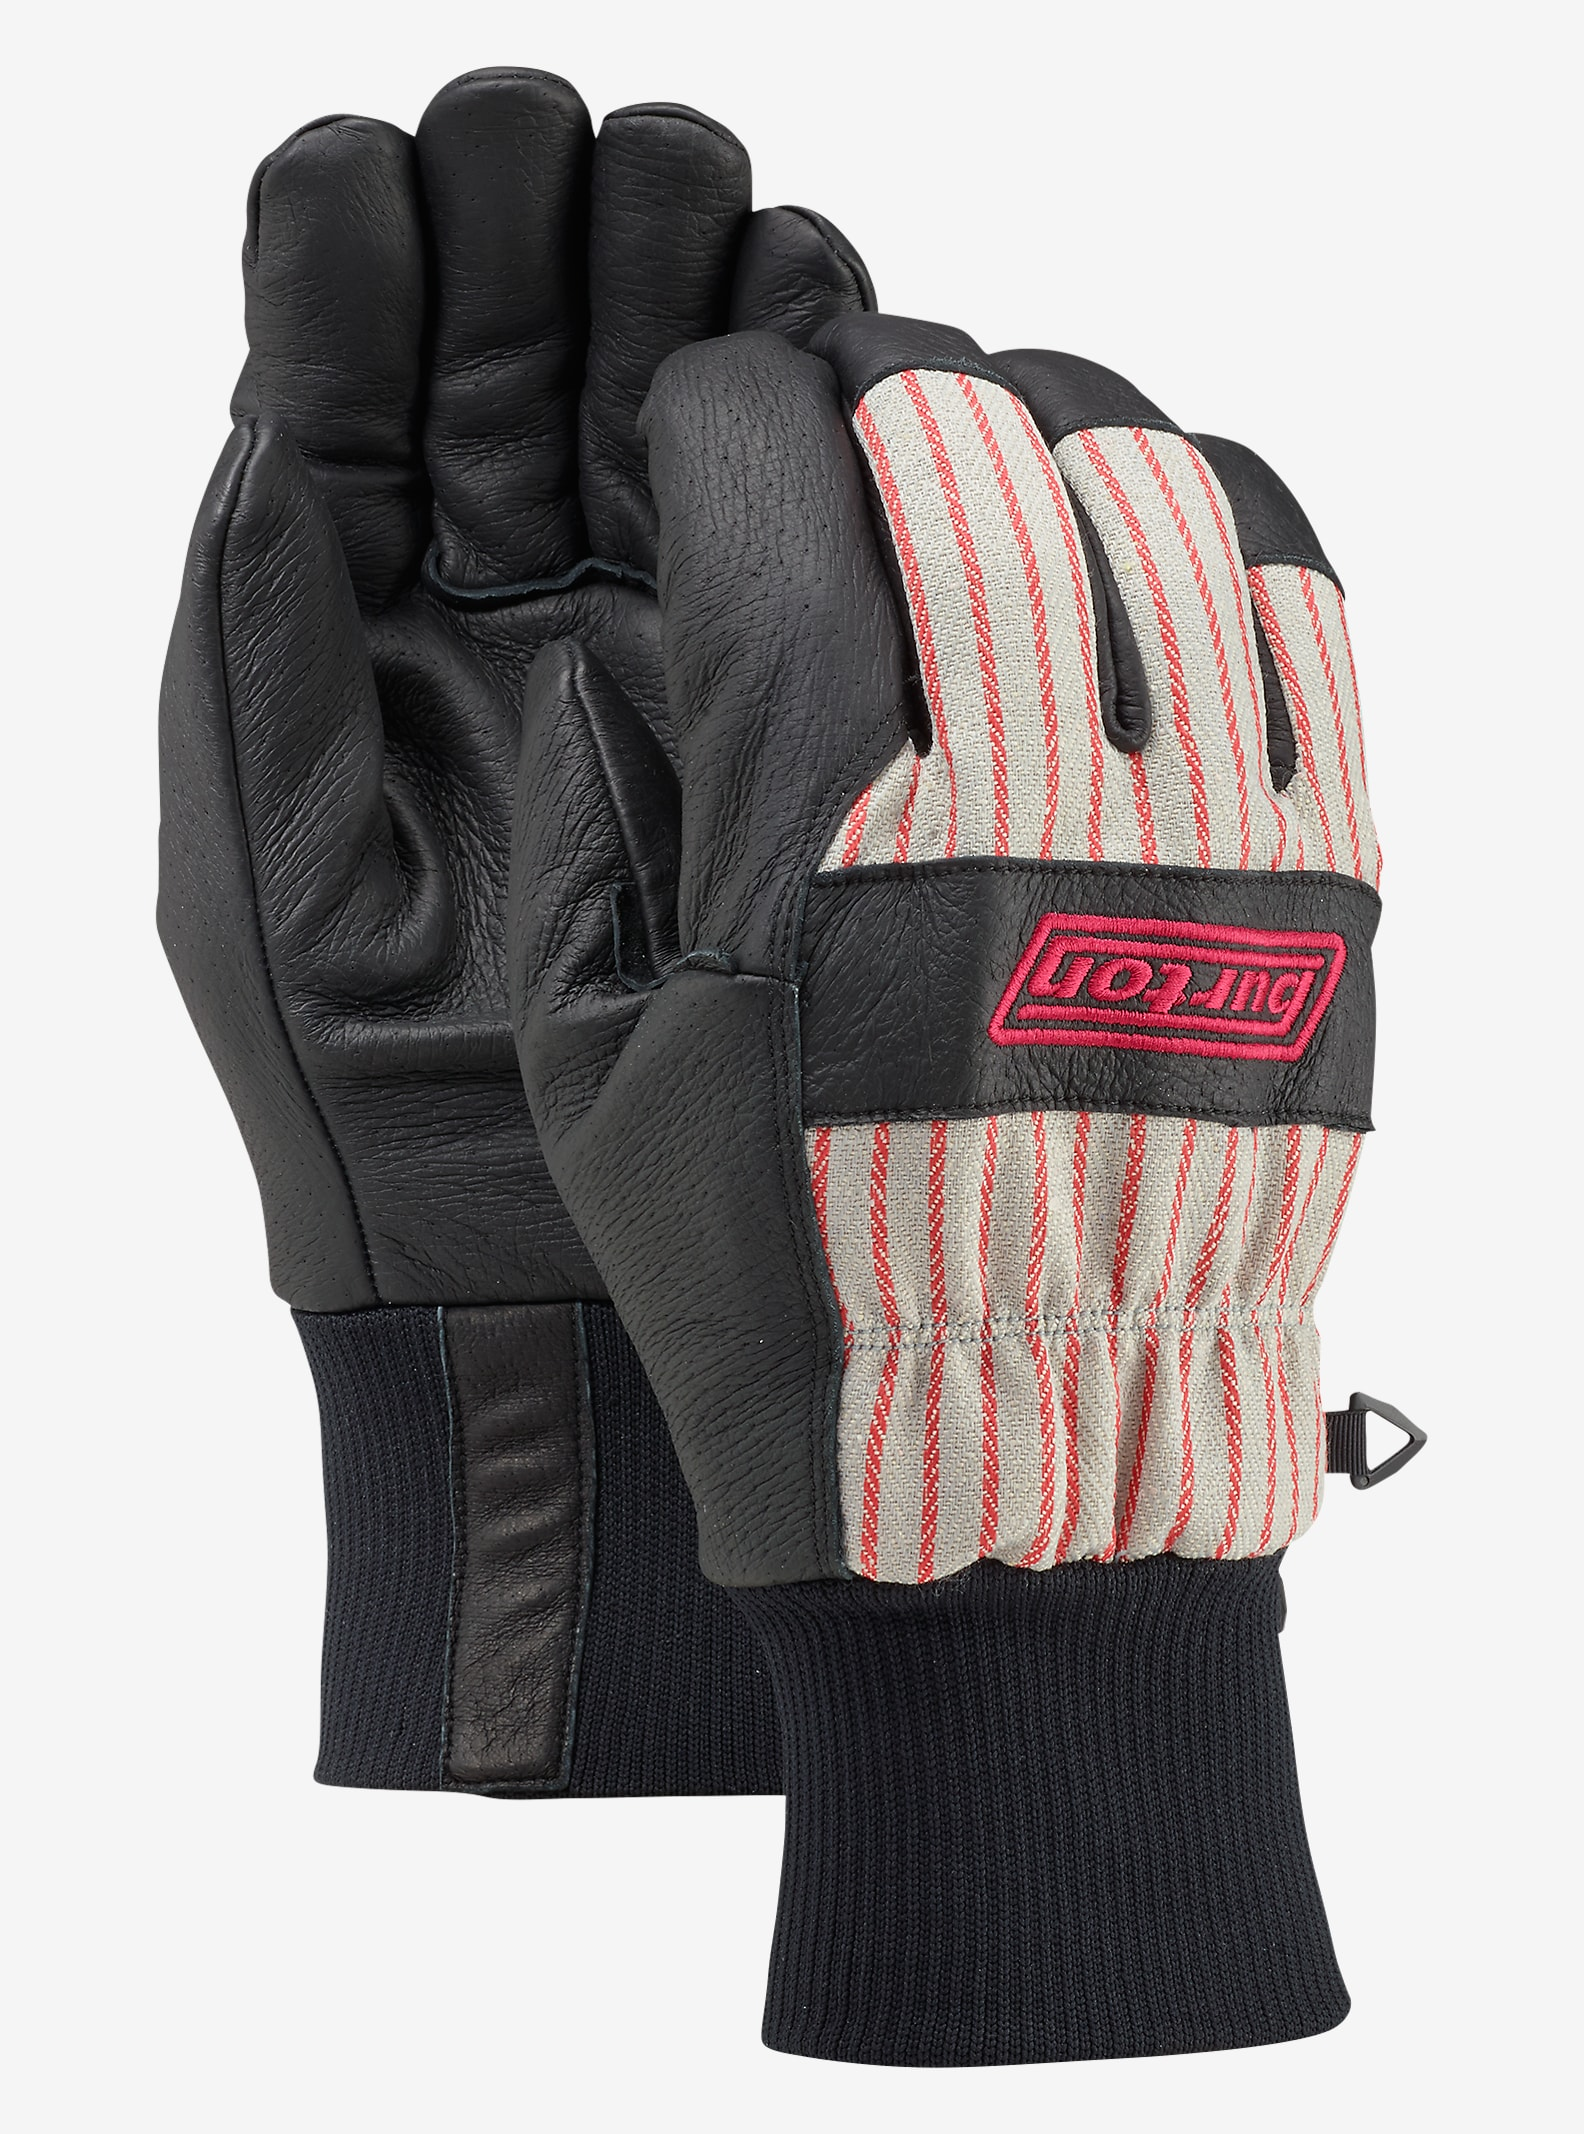 Burton Lifty Glove shown in True Black